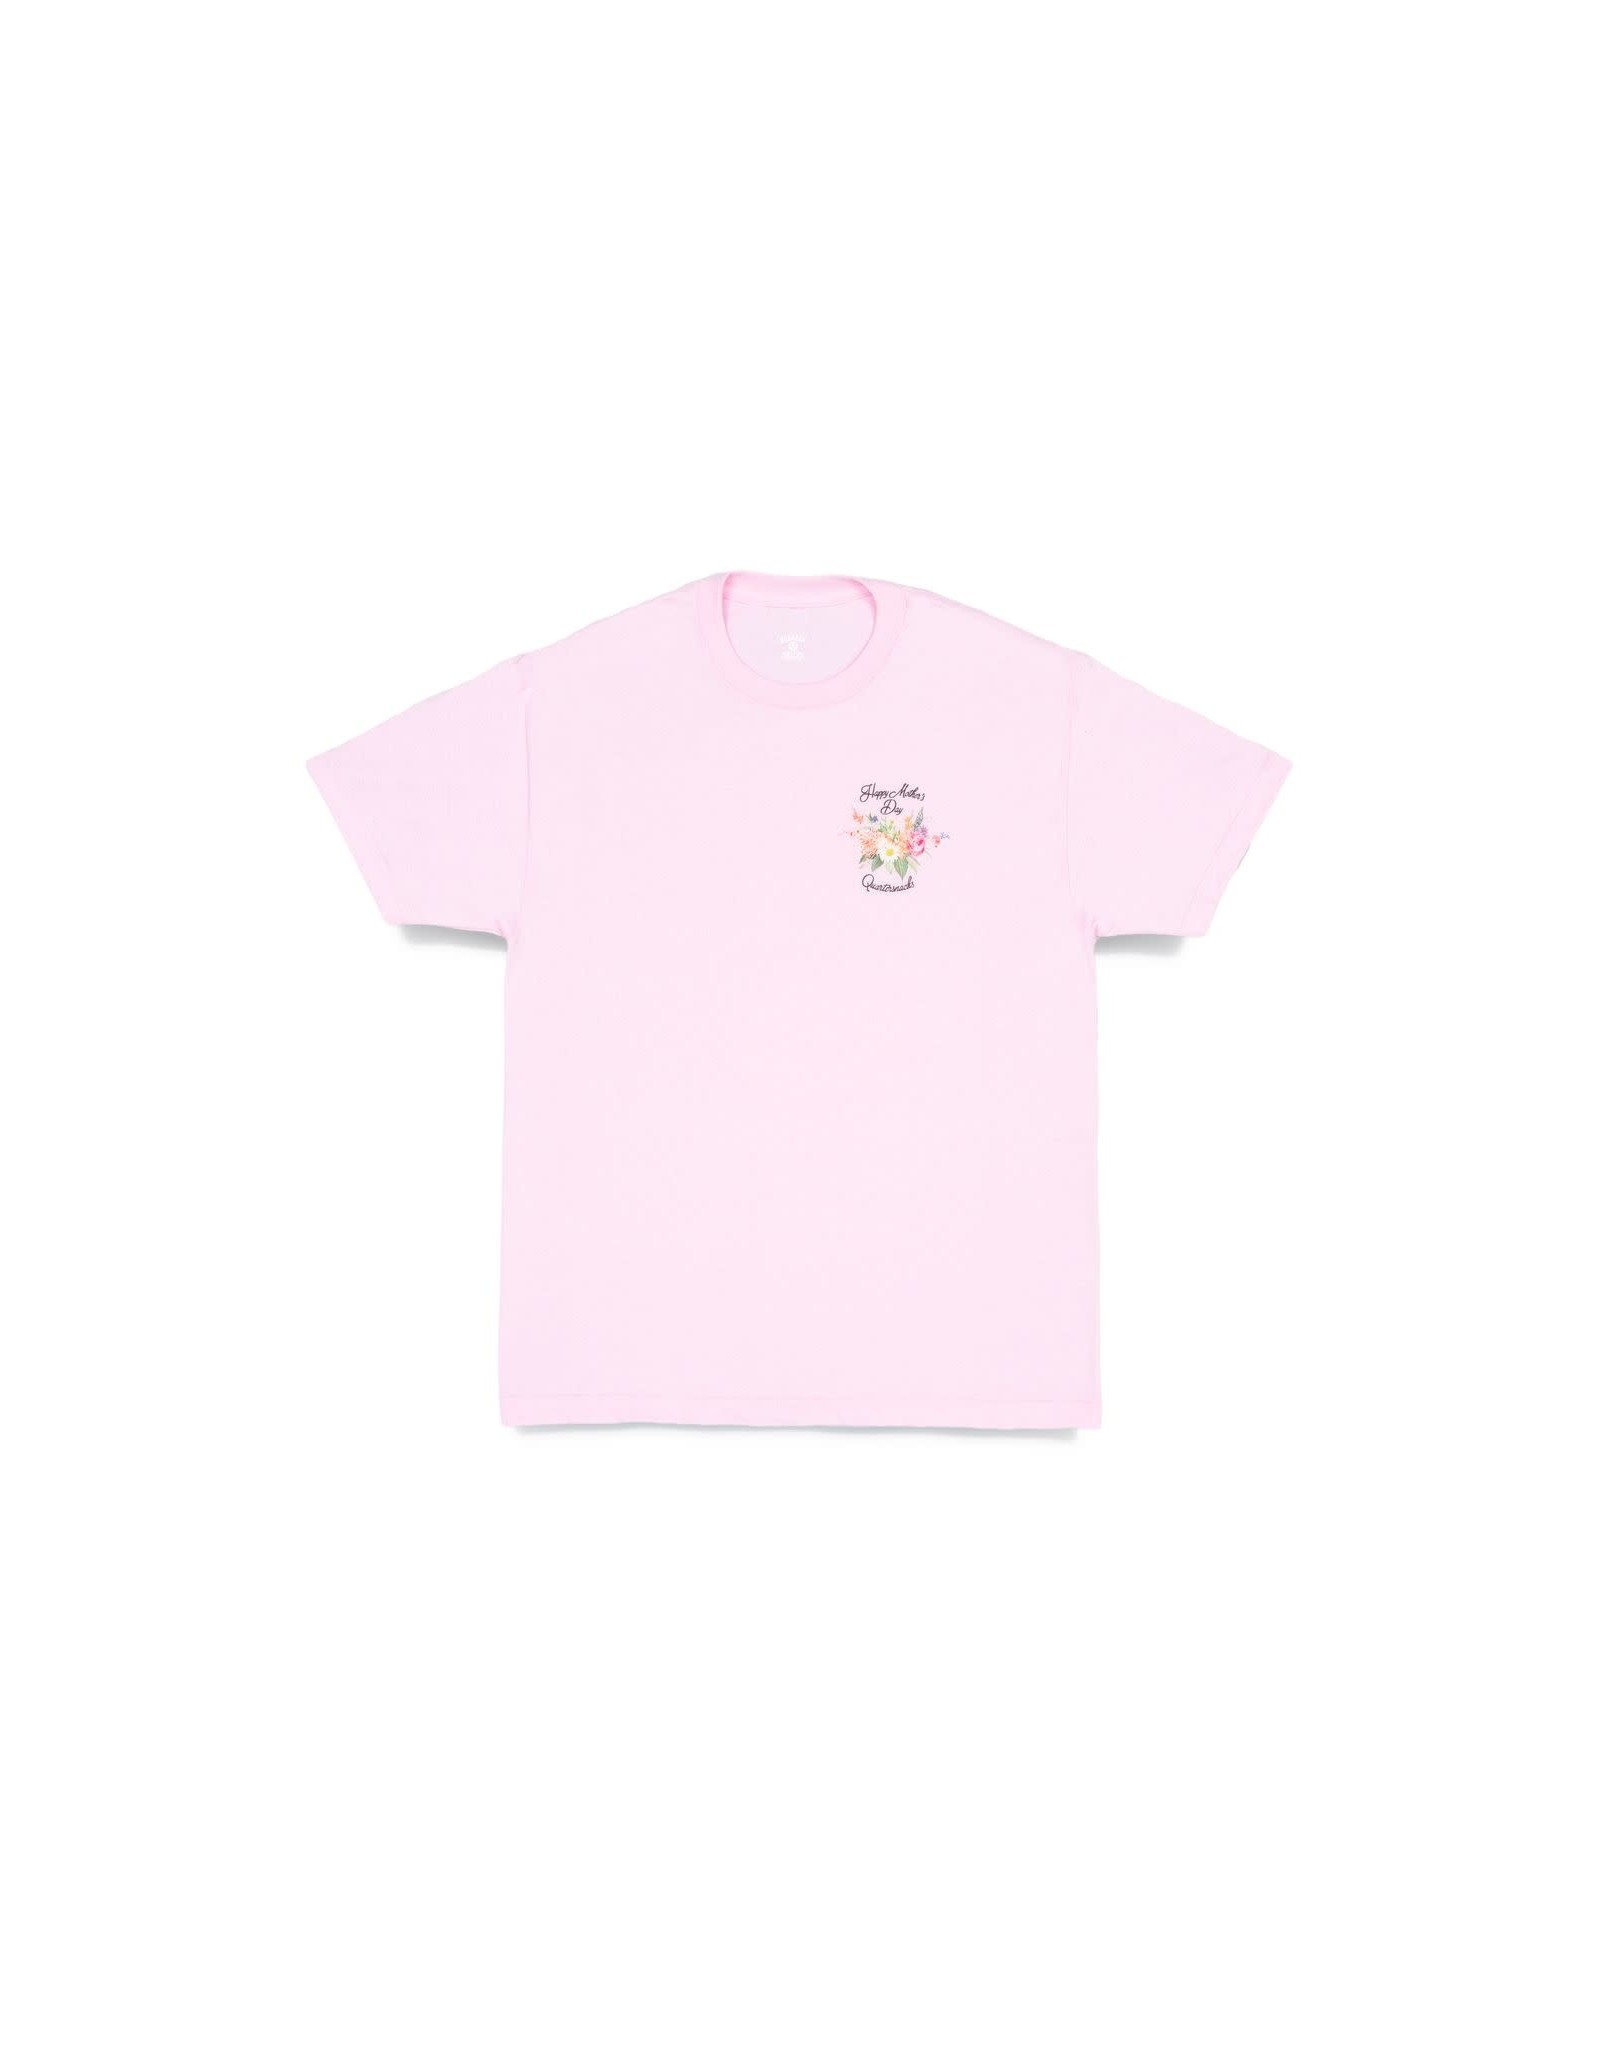 QuarterSnacks Mothers Day Snackman Charity Tee - Pink